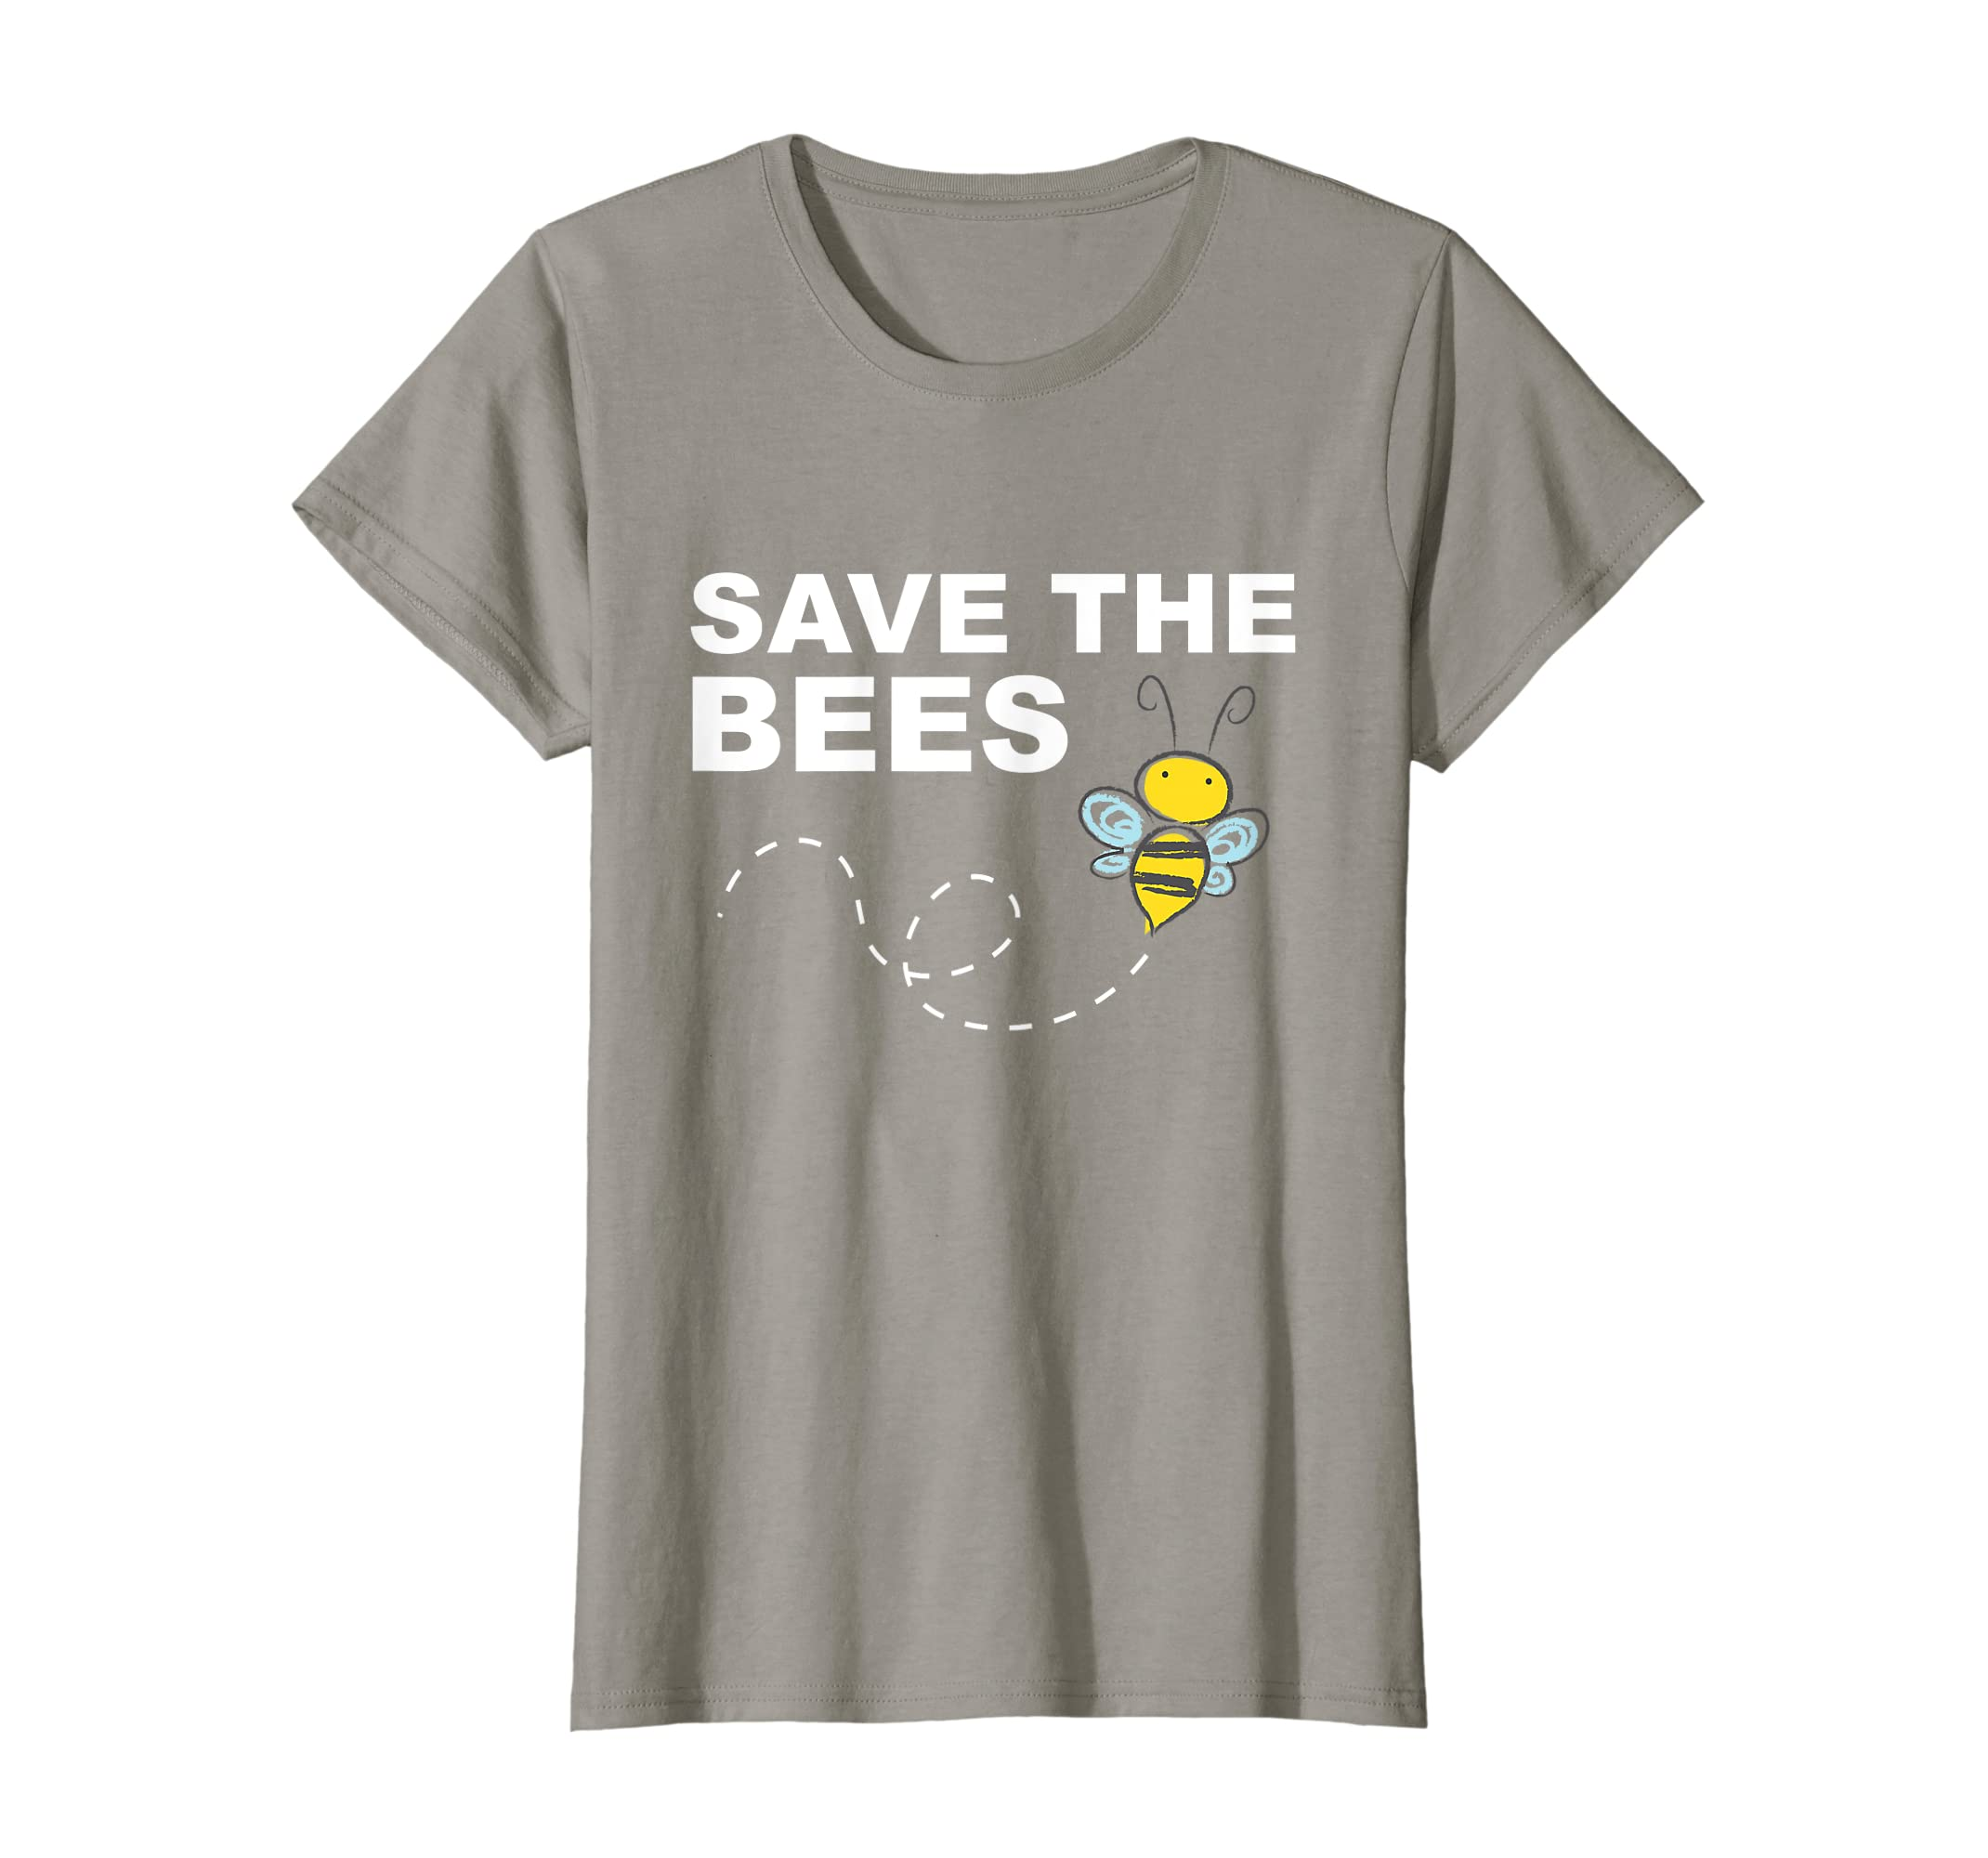 748b38c4 Amazon.com: Save the Bees Shirt for Men Women and Children: Clothing